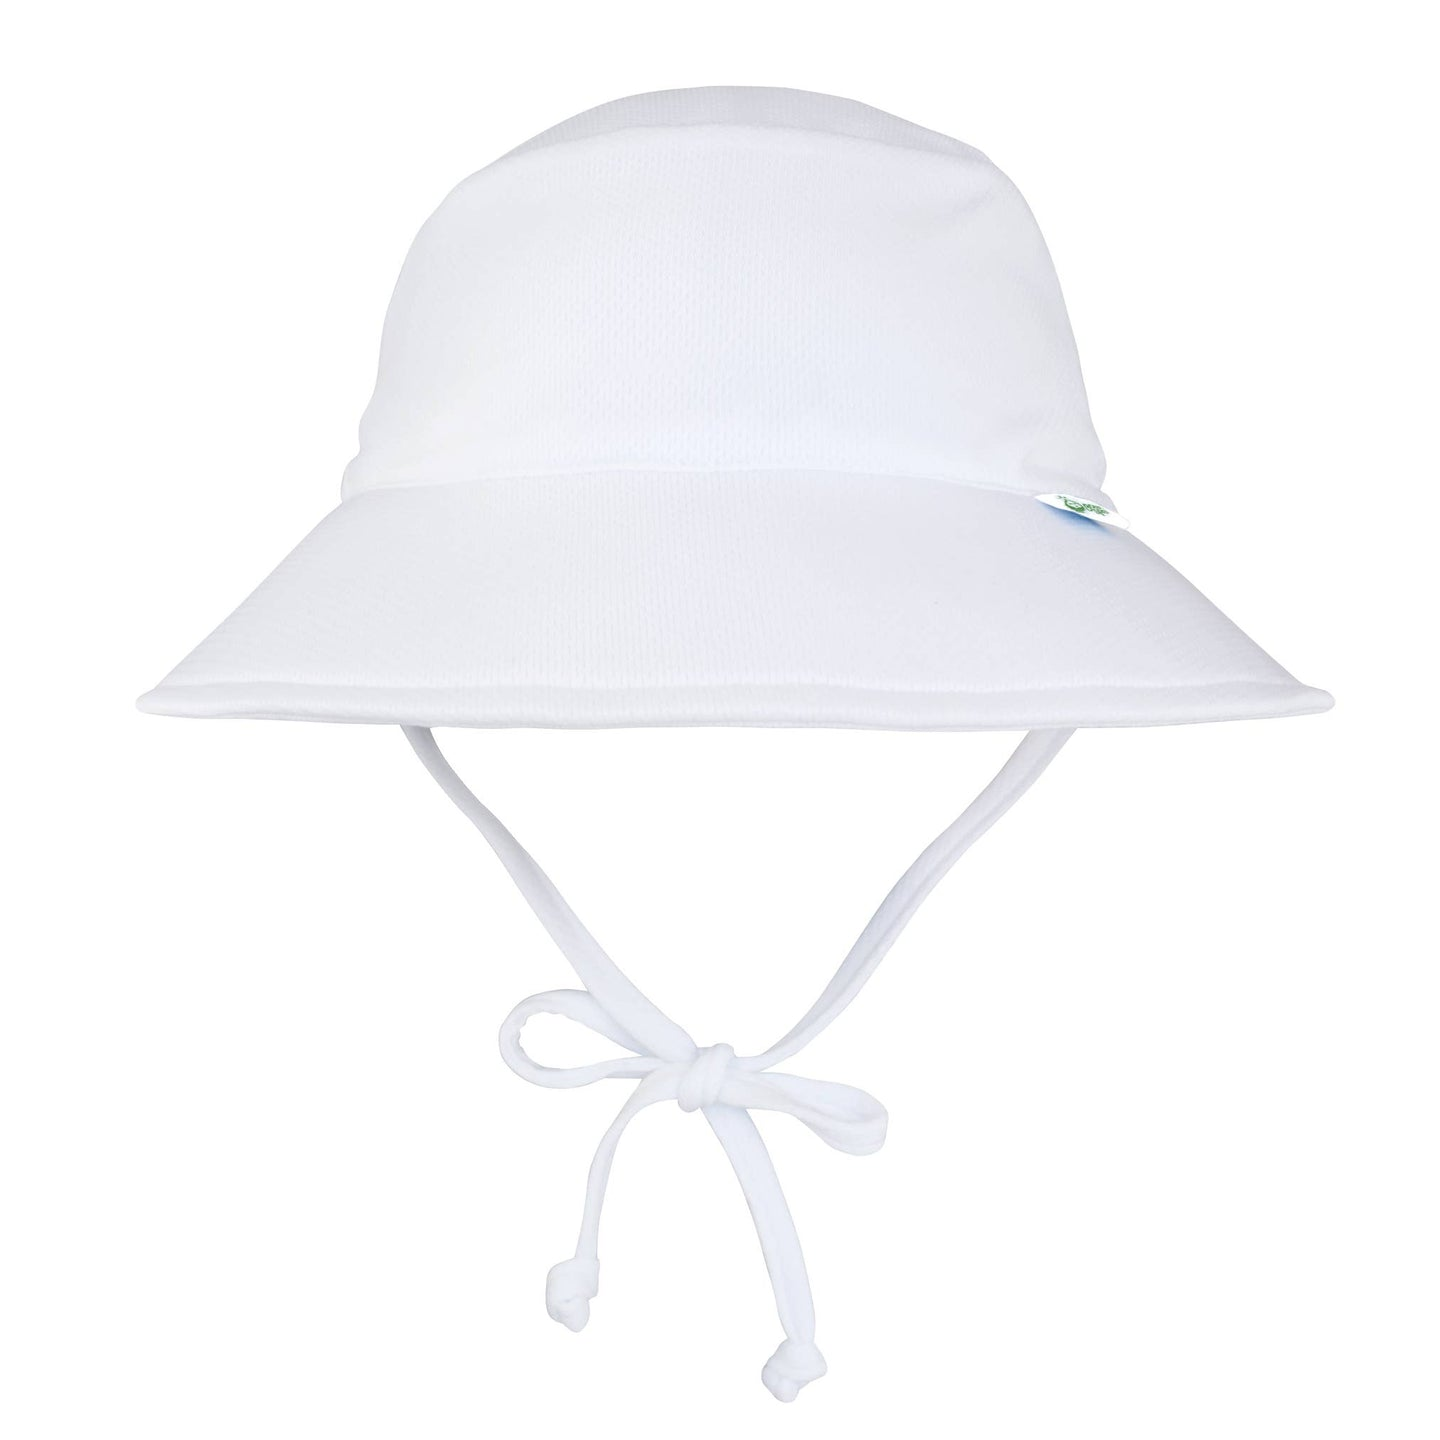 White Sun Protection Bucket Hat